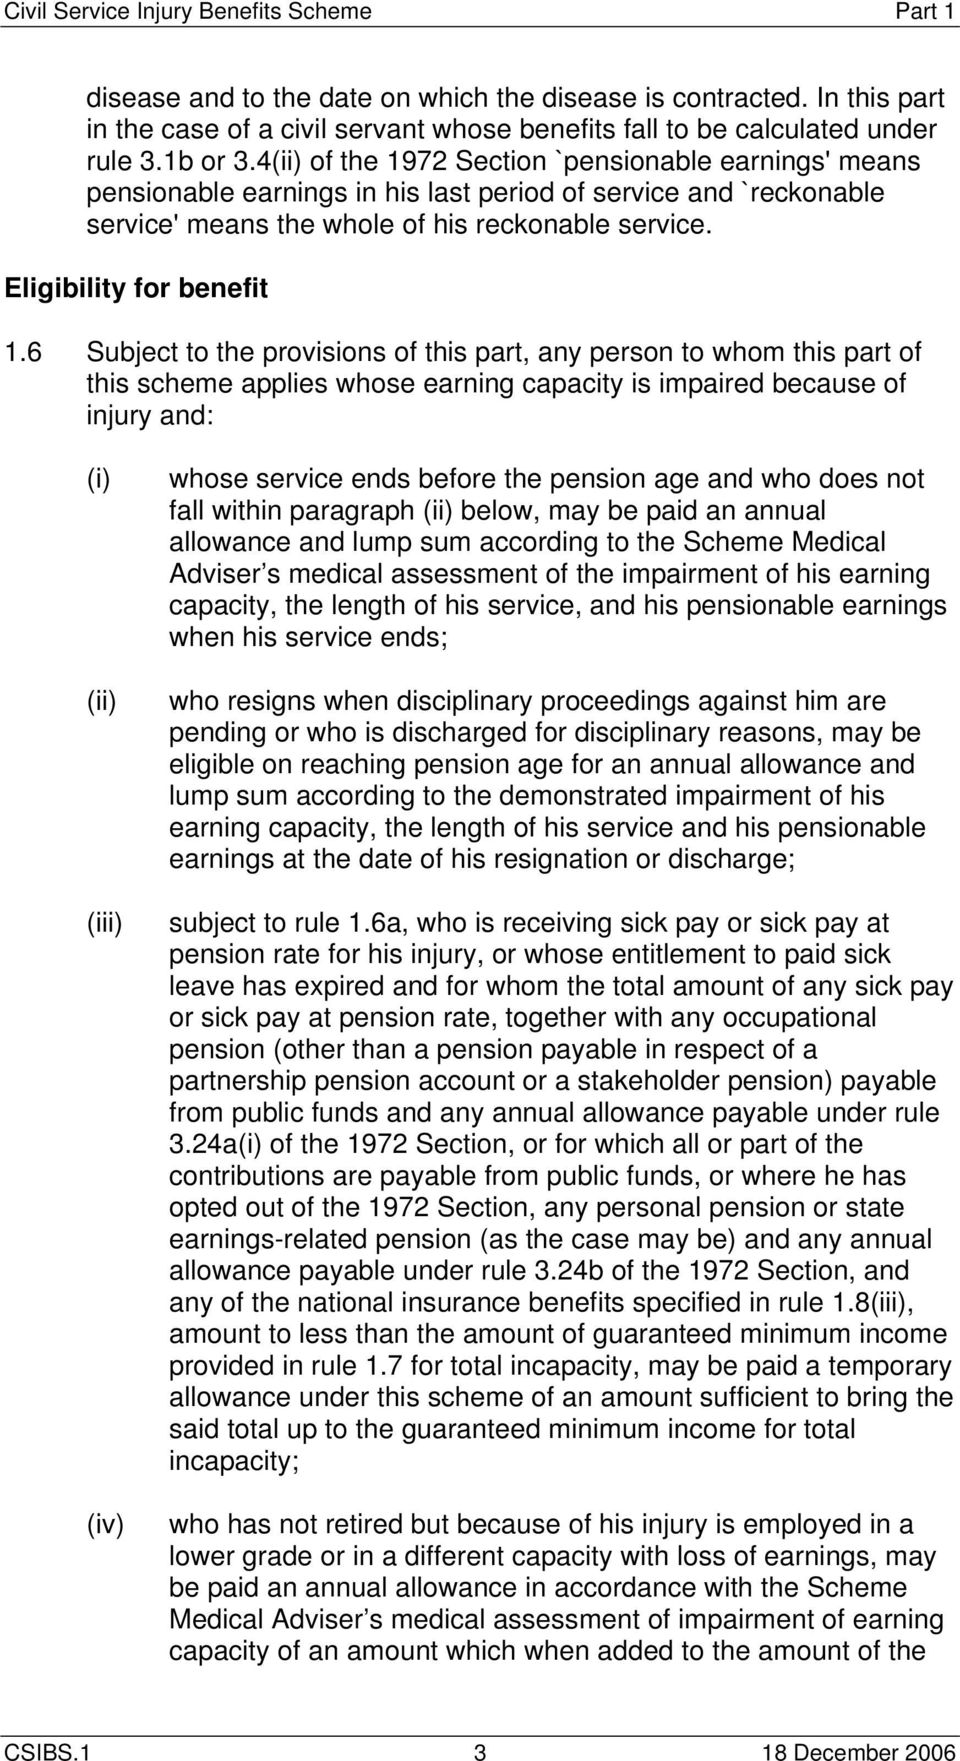 6 Subject to the provisions of this part, any person to whom this part of this scheme applies whose earning capacity is impaired because of injury and: (i) (iii) (iv) whose service ends before the